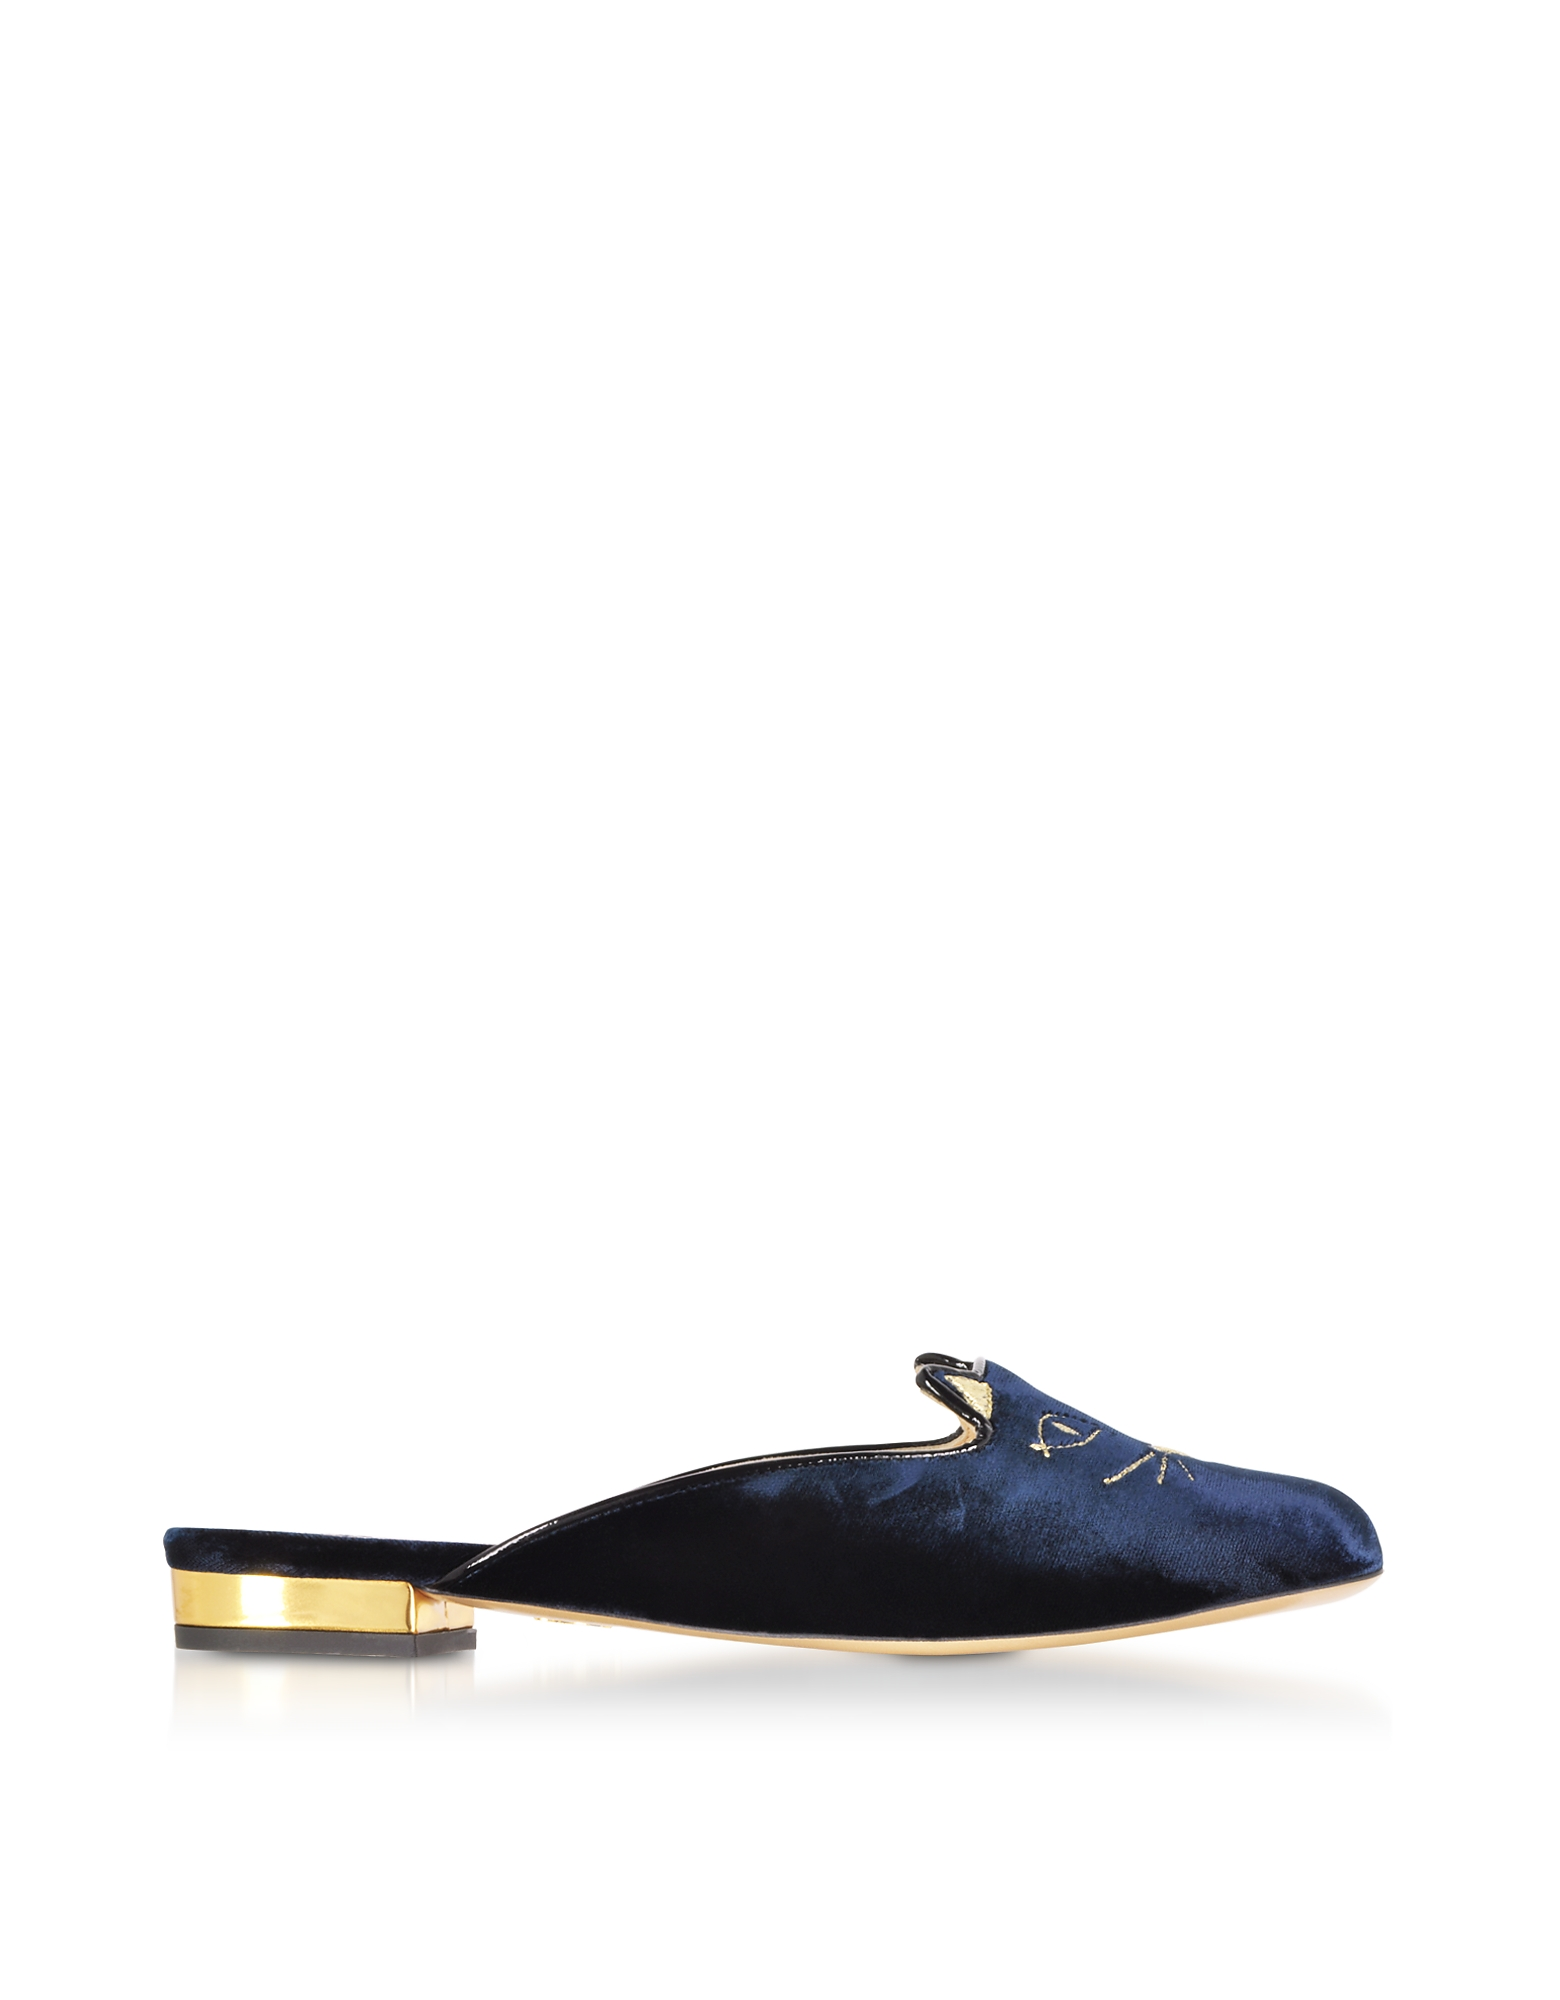 Charlotte Olympia Shoes, Navy Blue Velvet Kitty Slippers